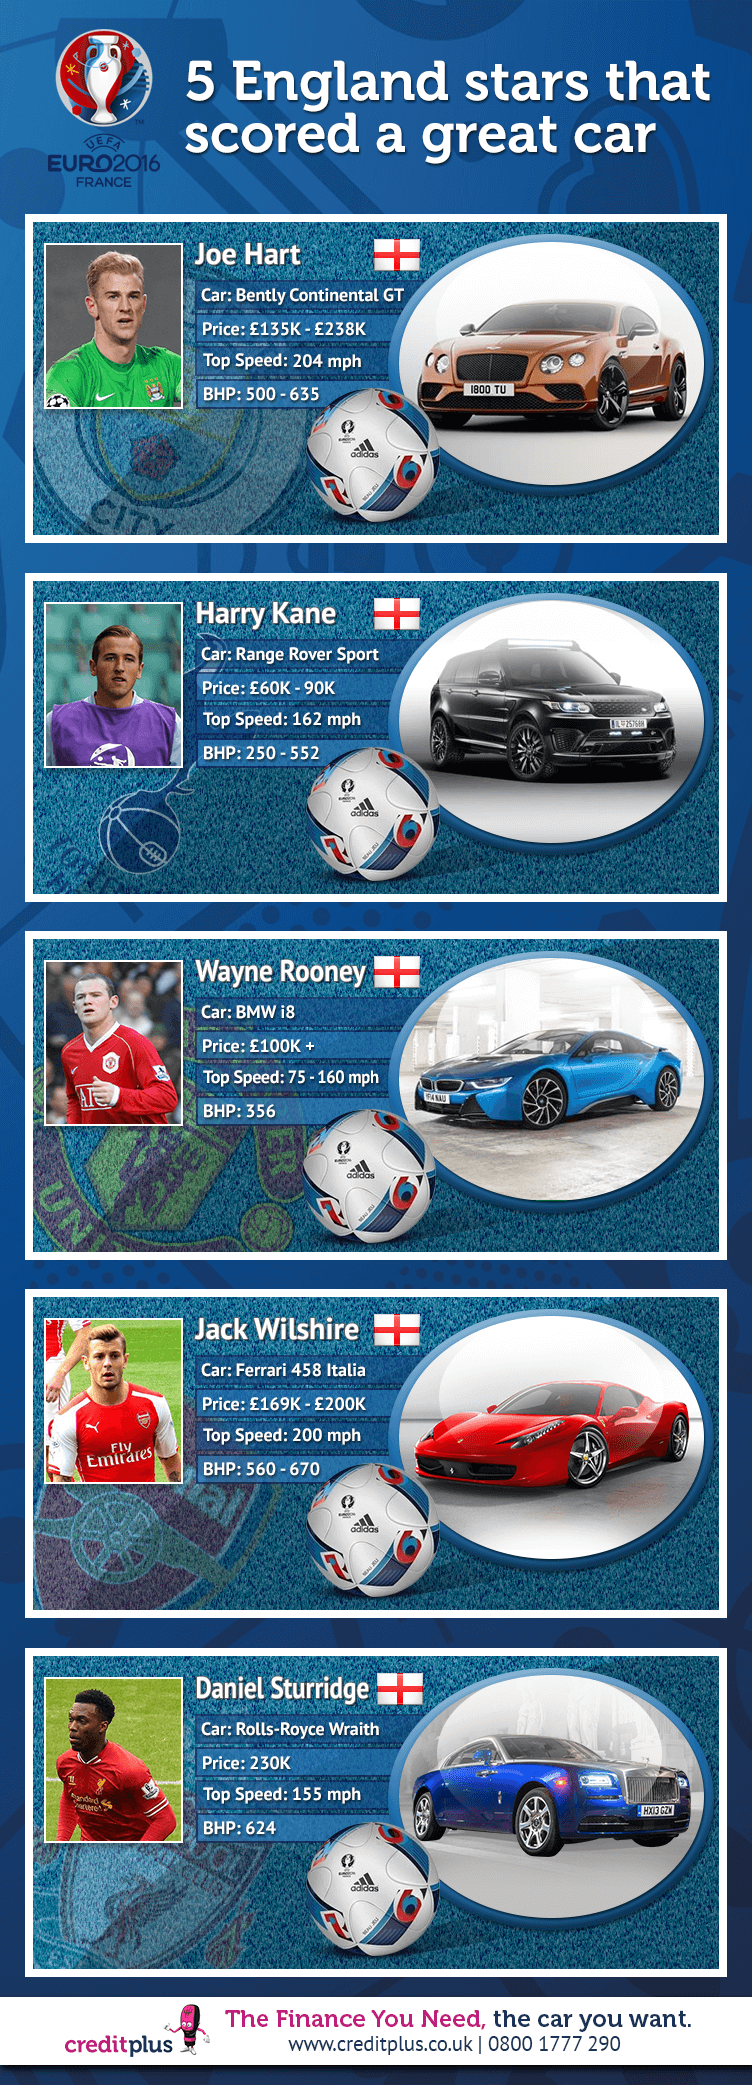 football_cars_euro_2016png